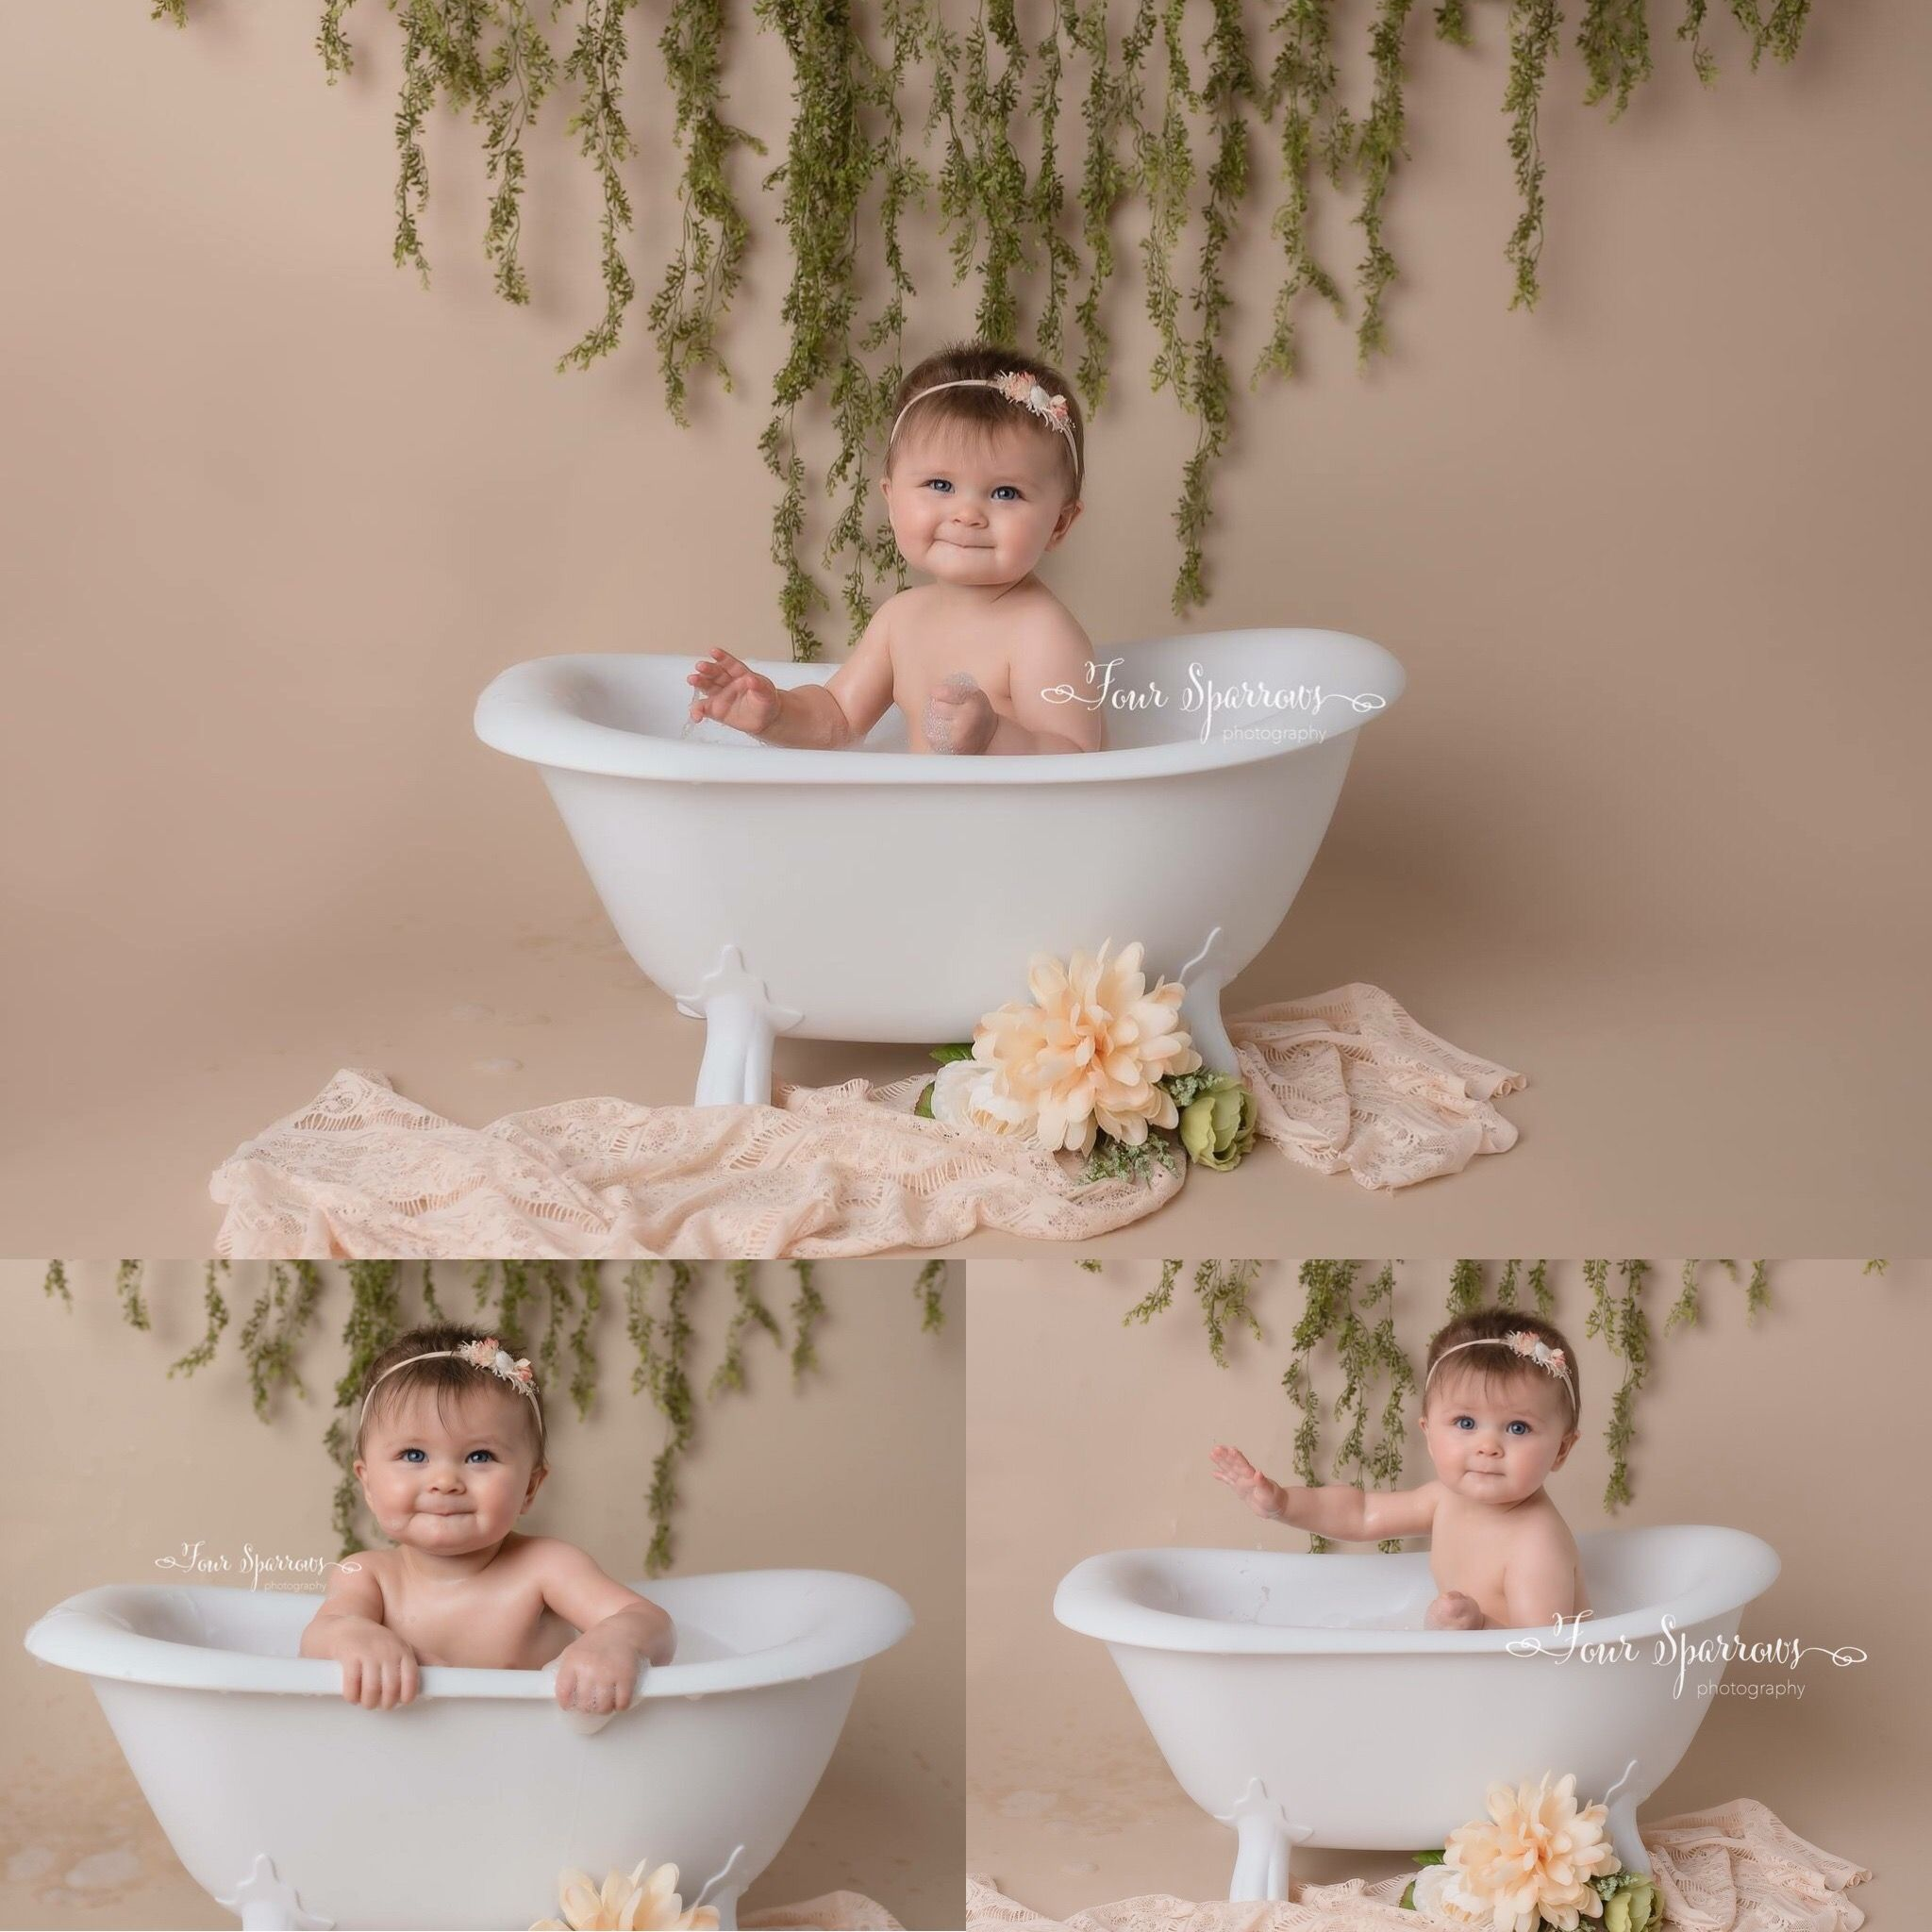 Gatsby Clawfoot Bath Tub With Images Baby Bath Tub Milk Bath